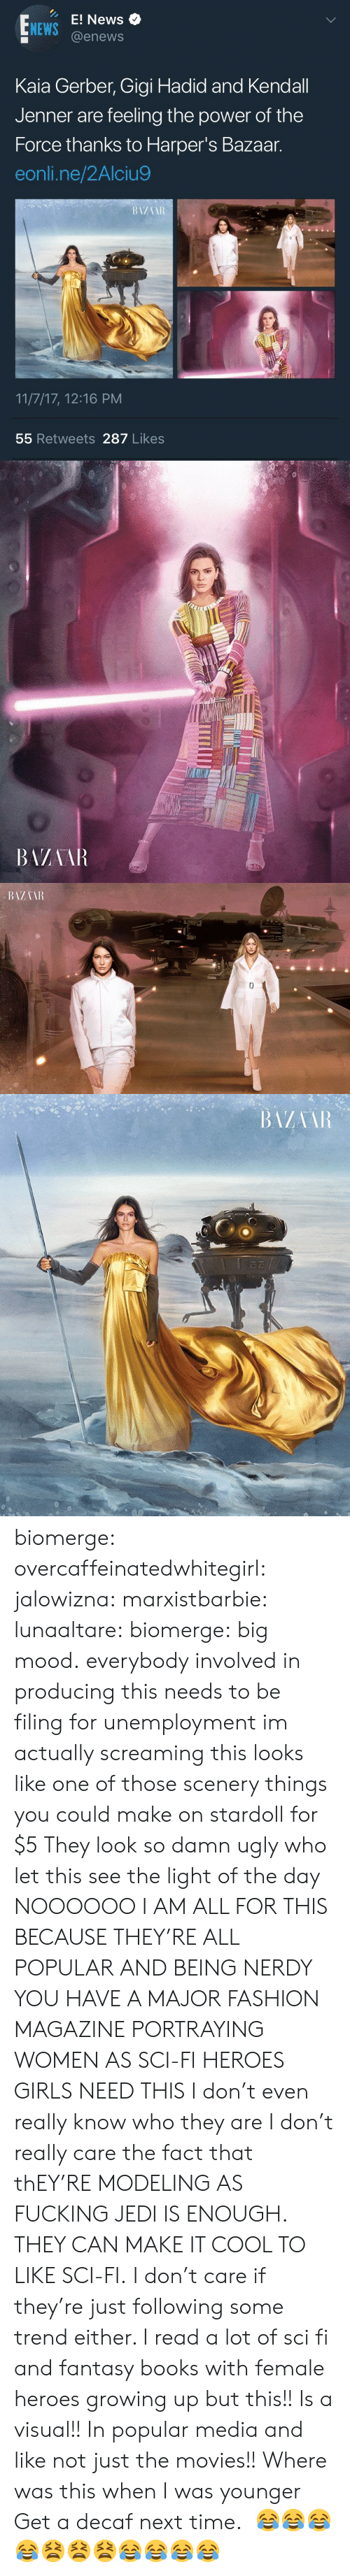 Kendall Jenner: E! News  @enews  NEWS  Kaia Gerber, Gigi Hadid and Kendall  Jenner are feeling the power of the  Force thanks to Harper's Bazaar.  eonli.ne/2Alciu9  11/7/17, 12:16 PM  55 Retweets 287 Likes   BAZAAR biomerge: overcaffeinatedwhitegirl:  jalowizna:   marxistbarbie:   lunaaltare:  biomerge:  big mood.  everybody involved in producing this needs to be filing for unemployment  im actually screaming this looks like one of those scenery things you could make on stardoll for $5   They look so damn ugly who let this see the light of the day   NOOOOOO I AM ALL FOR THIS BECAUSE THEY'RE ALL POPULAR AND BEING NERDY YOU HAVE A MAJOR FASHION MAGAZINE PORTRAYING WOMEN AS SCI-FI HEROES GIRLS NEED THIS I don't even really know who they are I don't really care the fact that thEY'RE MODELING AS FUCKING JEDI IS ENOUGH. THEY CAN MAKE IT COOL TO LIKE SCI-FI. I don't care if they're just following some trend either. I read a lot of sci fi and fantasy books with female heroes growing up but this!! Is a visual!! In popular media and like not just the movies!! Where was this when I was younger  Get a decaf next time.    😂😂😂😂😫😫😫😂😂😂😂